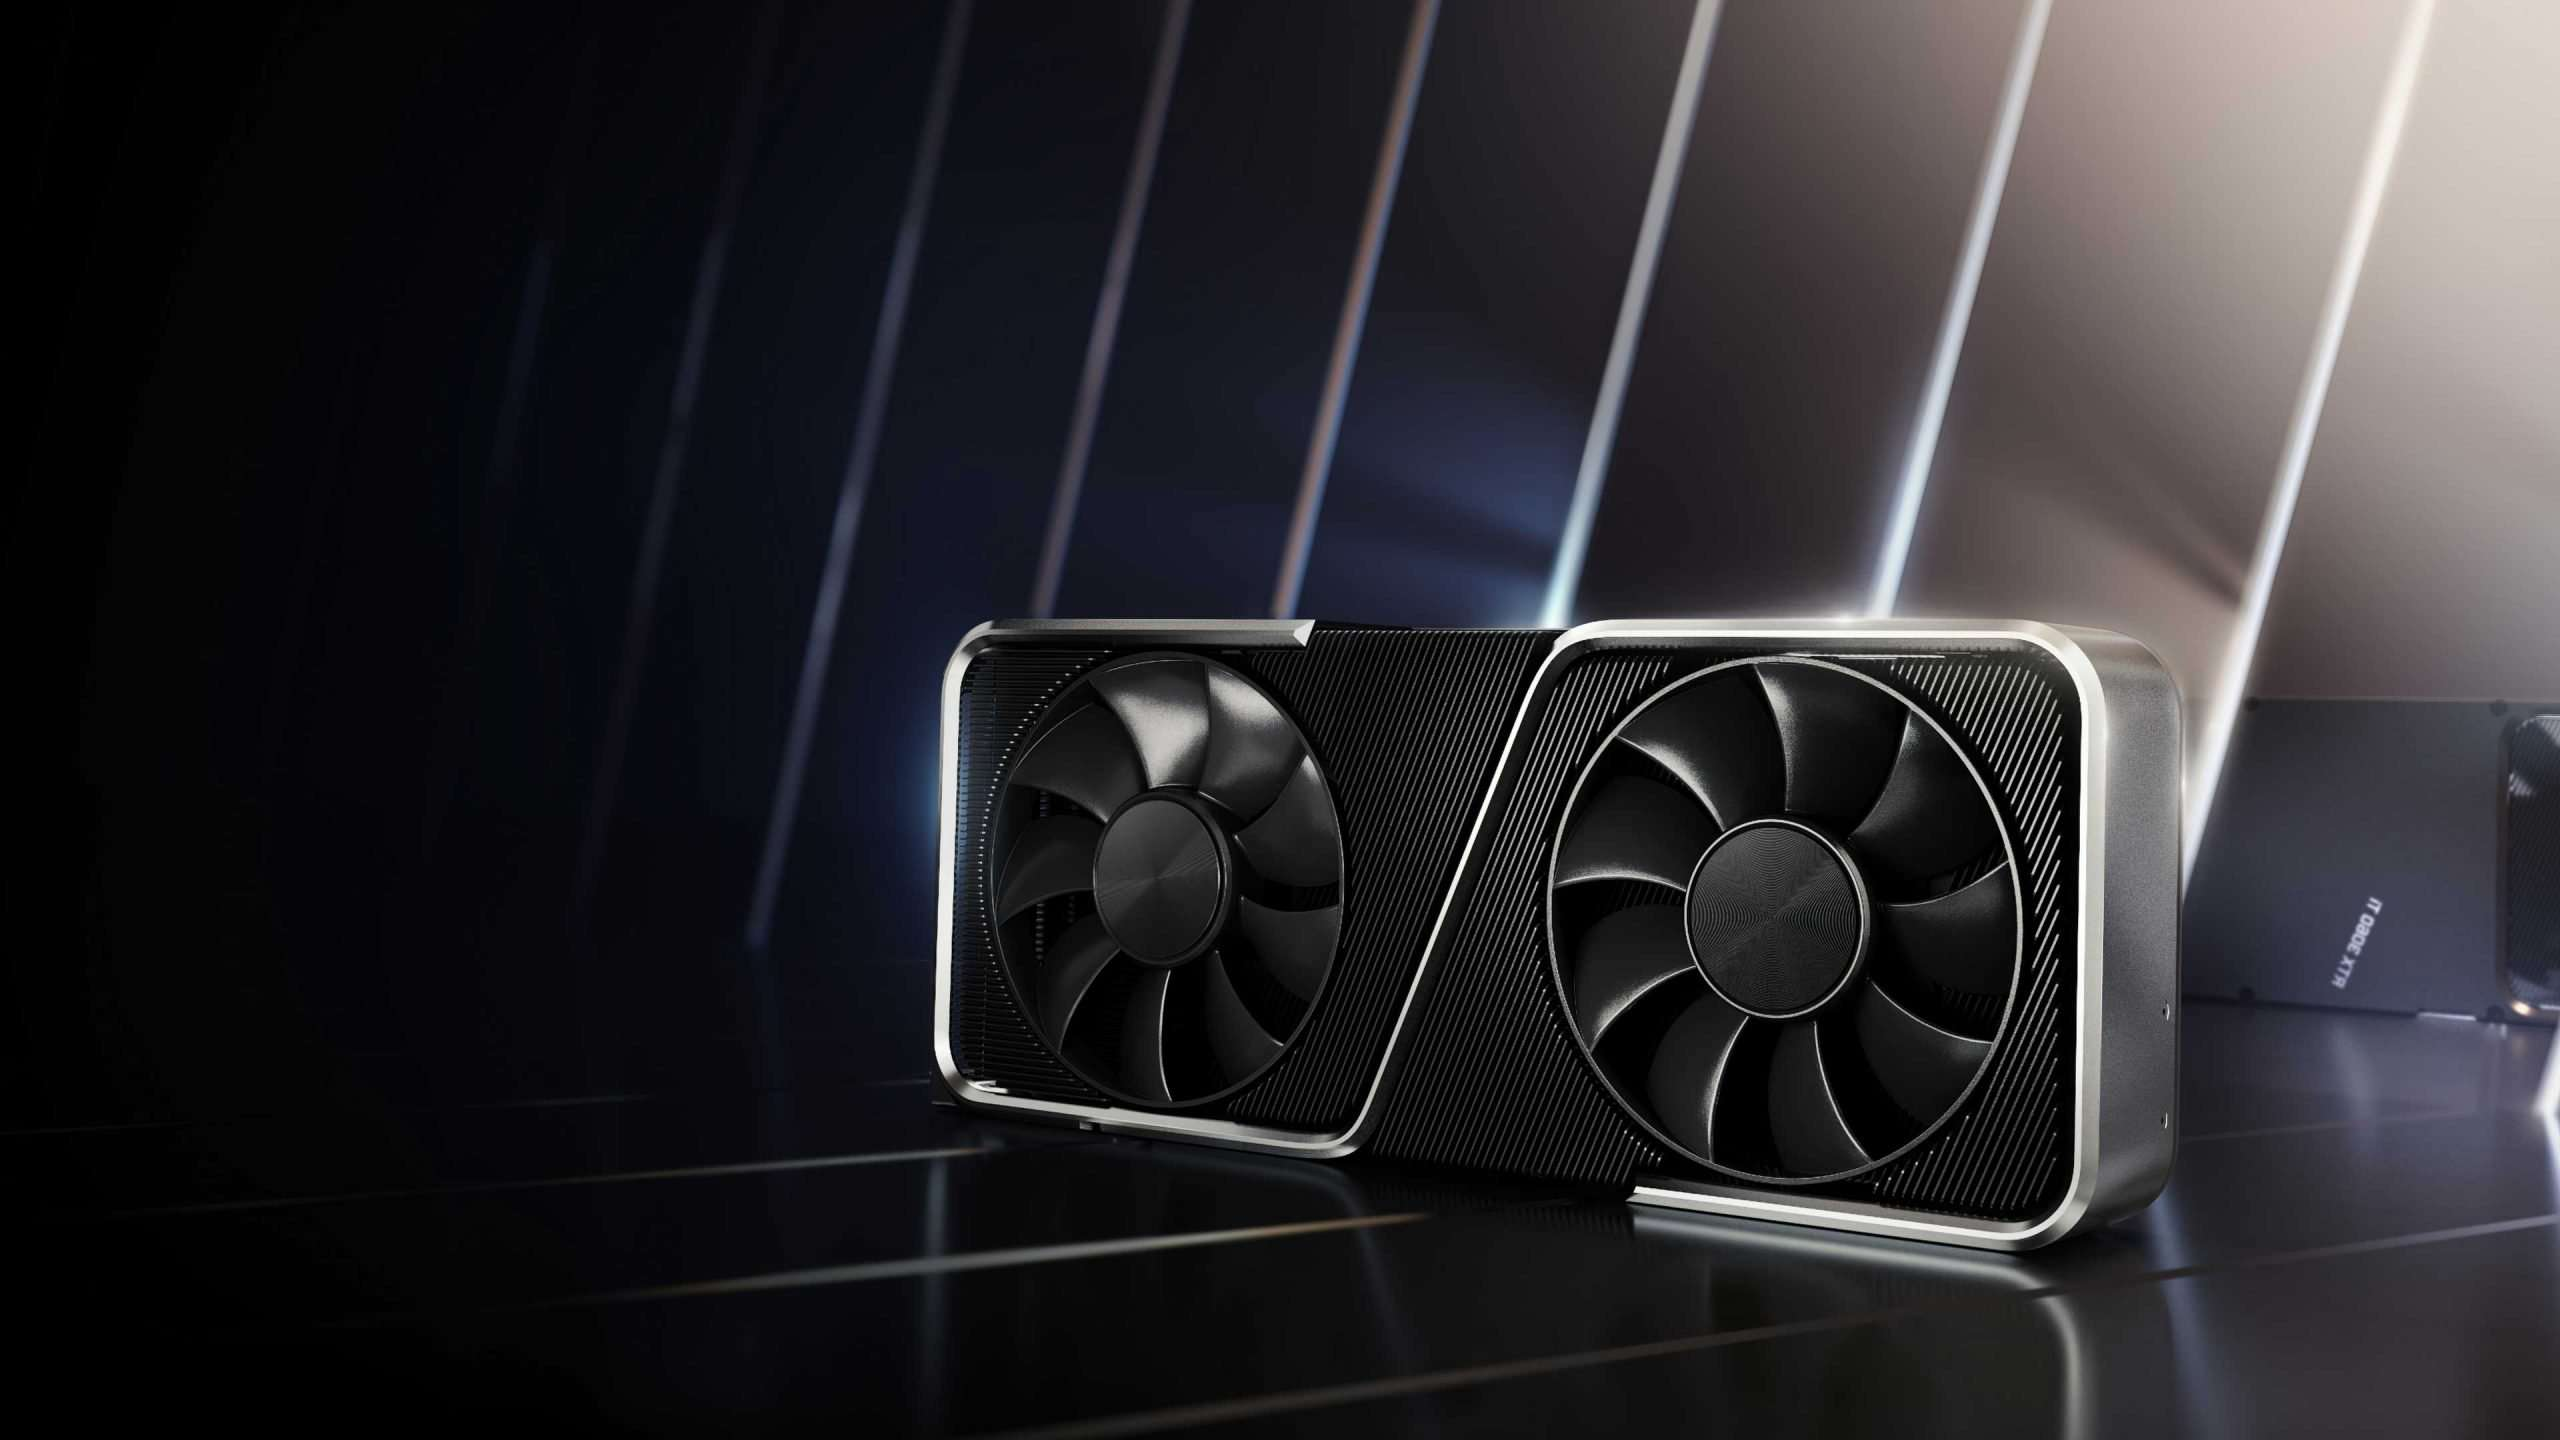 NVIDIA GeForce RTX 3060 Desktop GPUs will be available at Rs 29,500 in India